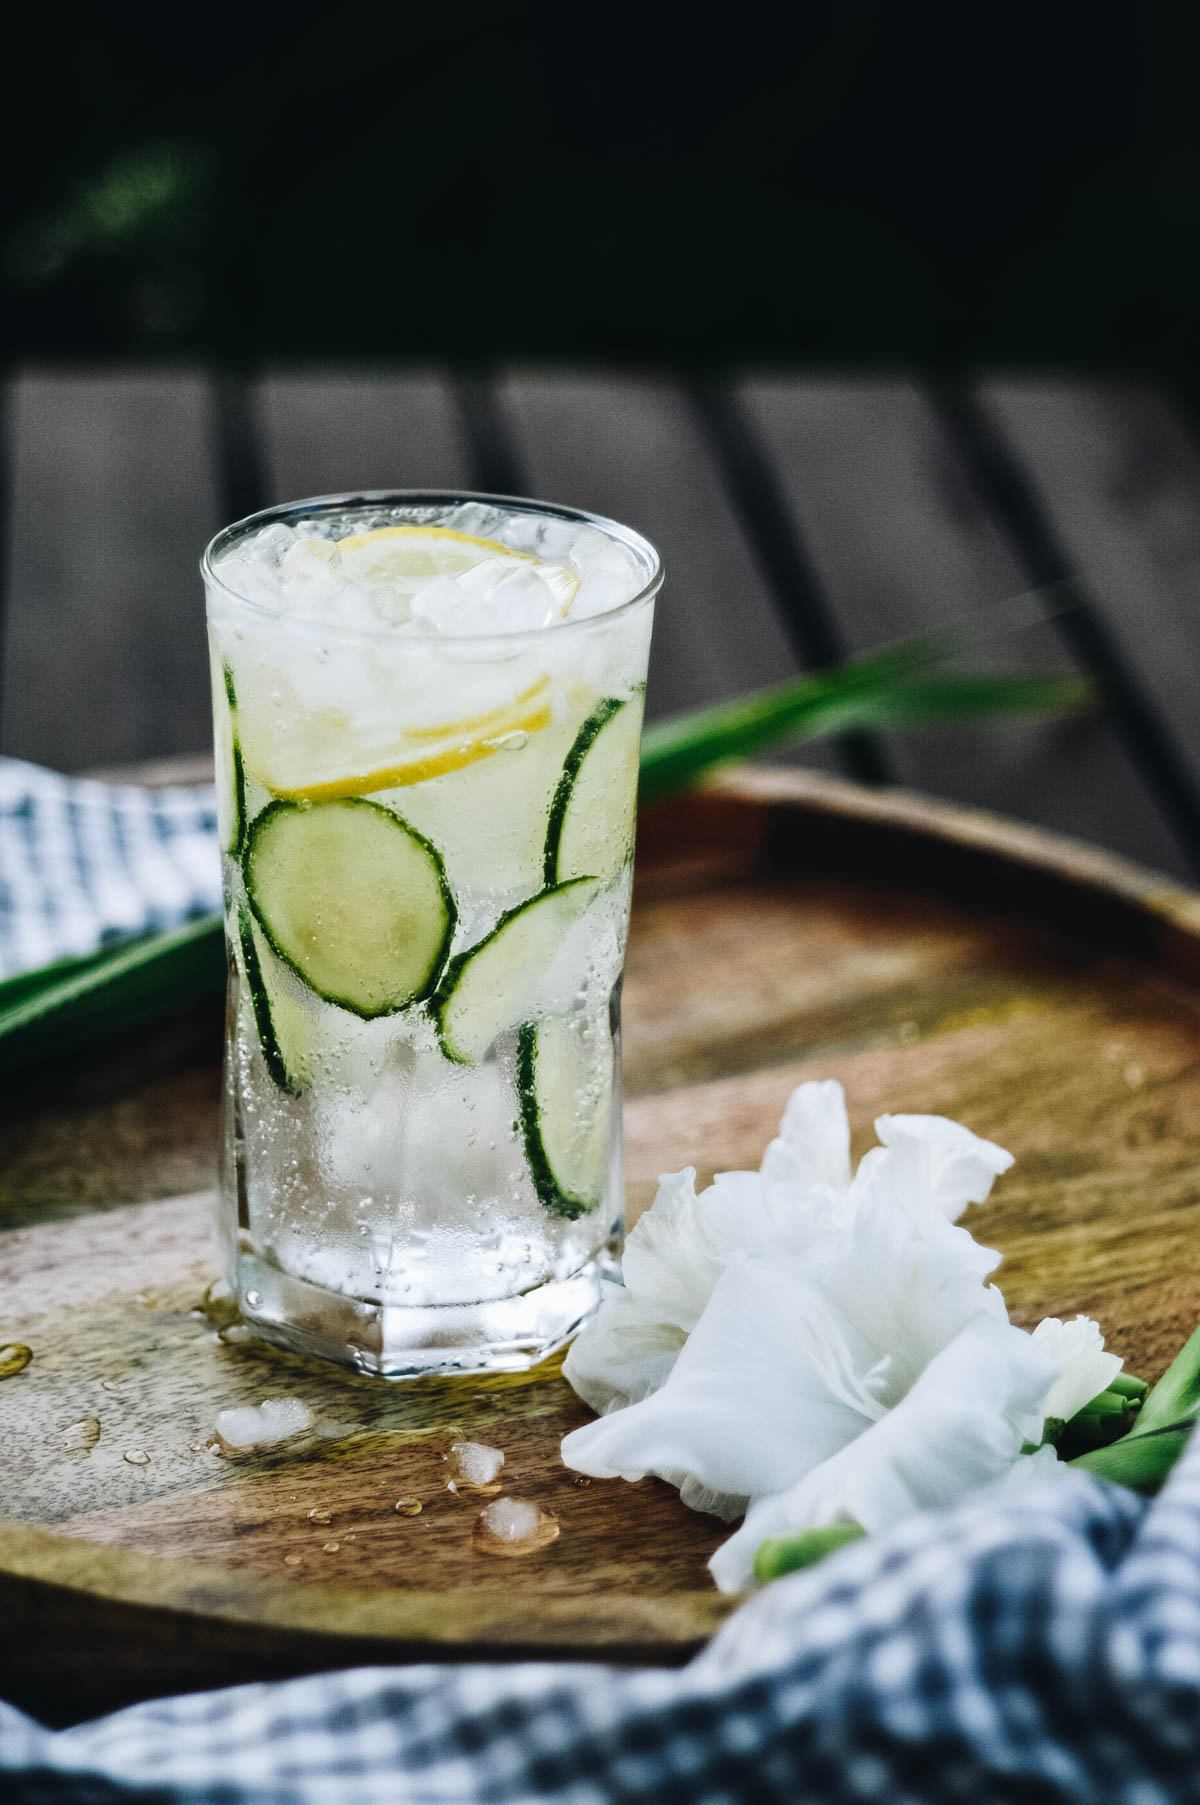 HOW-TO CLASSIC COLLINS  - - 2 oz Gin- 1 1/2 oz Fresh Lemon Juice- 1 oz Simple Syrup- 1/2 C Water- Cucumber slices- Lemon slices- Spindrift Sparkling Water CucumberAdd cucumber slices and gin to a cocktail shaker, smash with muddler. Pour simple syrup, citrus juice, and ice to shaker. Shake and strain into a tall glass filled with crushed ice. Top with Spindrift® Cucumber sparkling water, and garnish with cucumber and lemon slices.